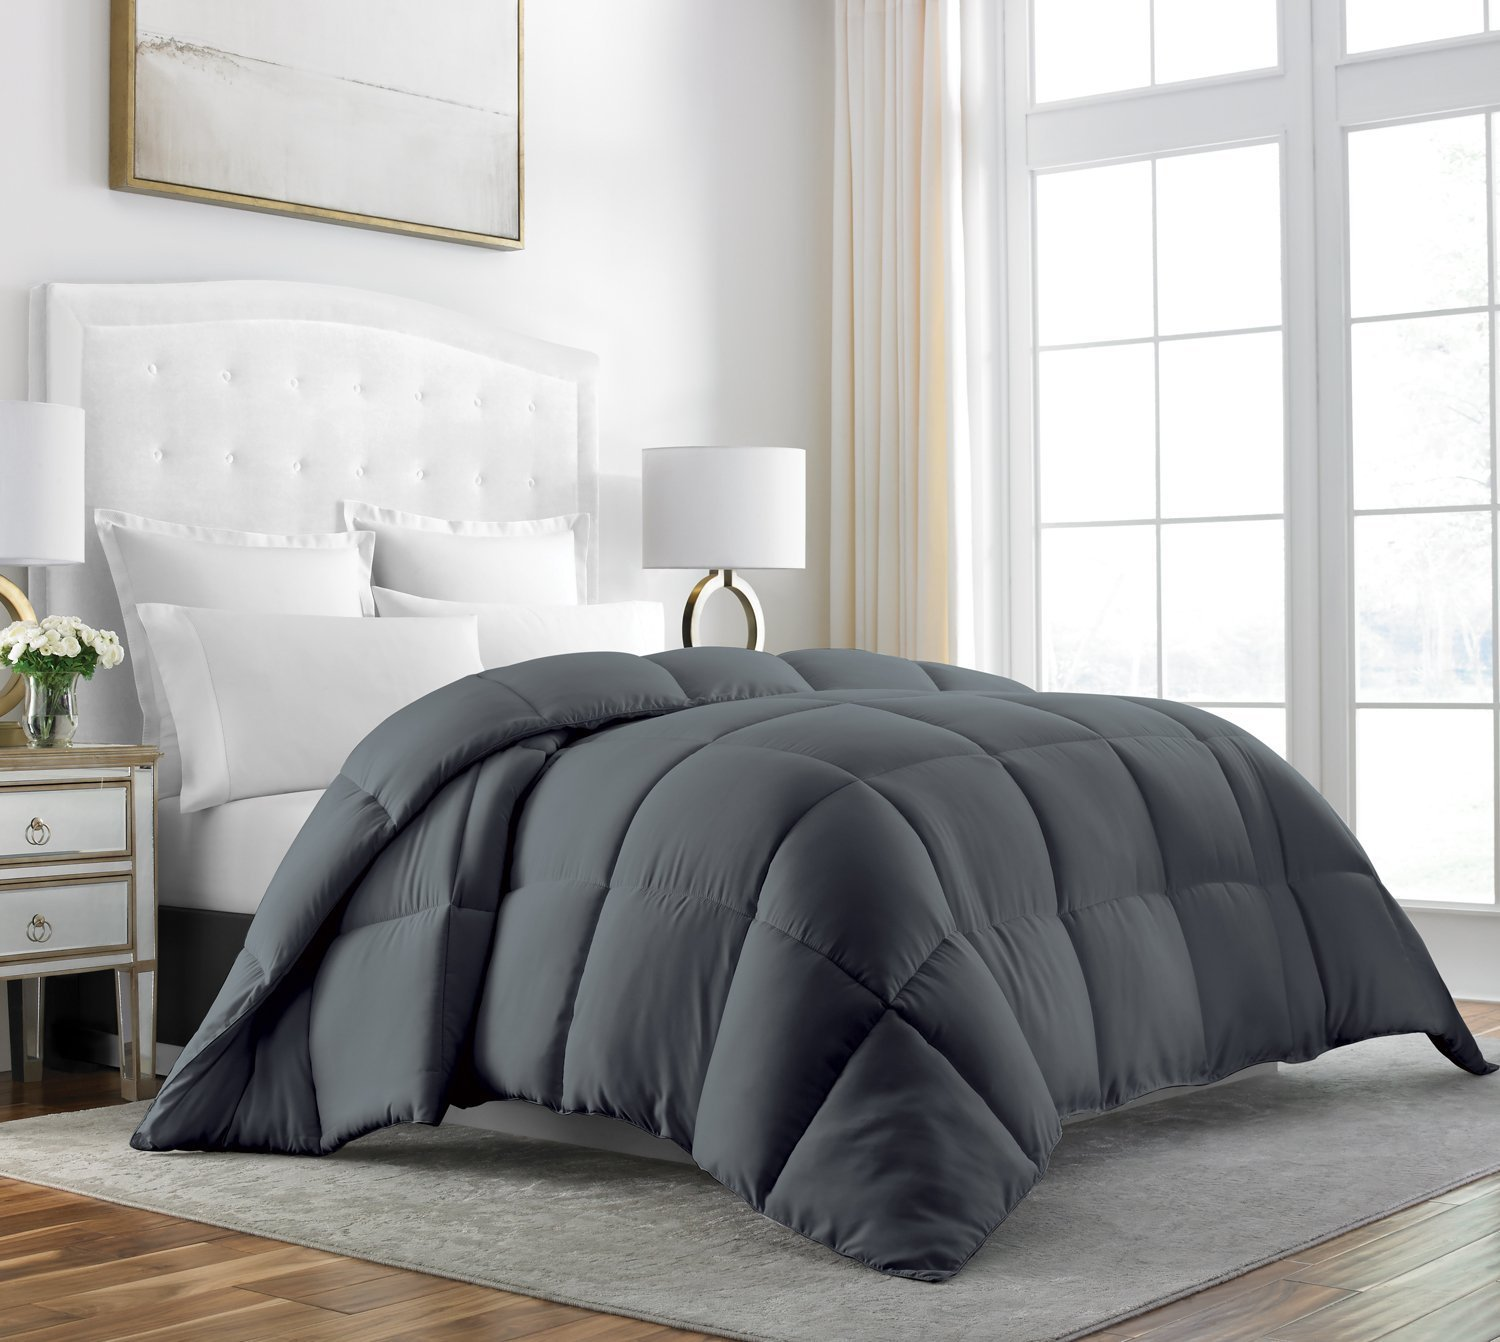 Beckham Hotel Collection Luxury 100% Egyptian Cotton Down Comforter - 70 oz Fill Weight, & 750 Fill Power - All Season Premium & Hypoallergenic Duvet Insert - Full/Queen - Gray